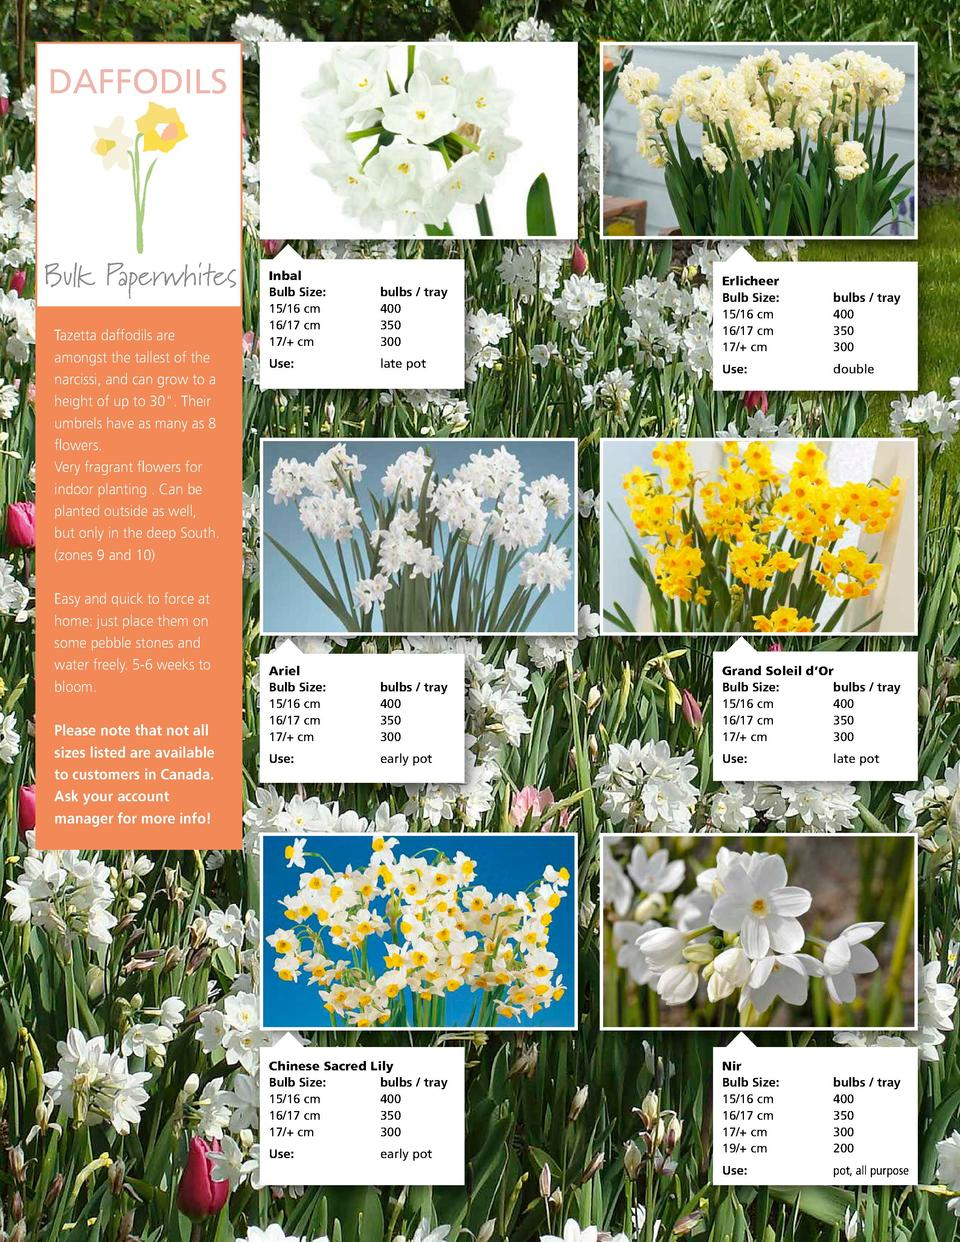 DAFFODILS  Bulk Paperwhites Tazetta daffodils are amongst the tallest of the narcissi, and can grow to a height of up to 3...